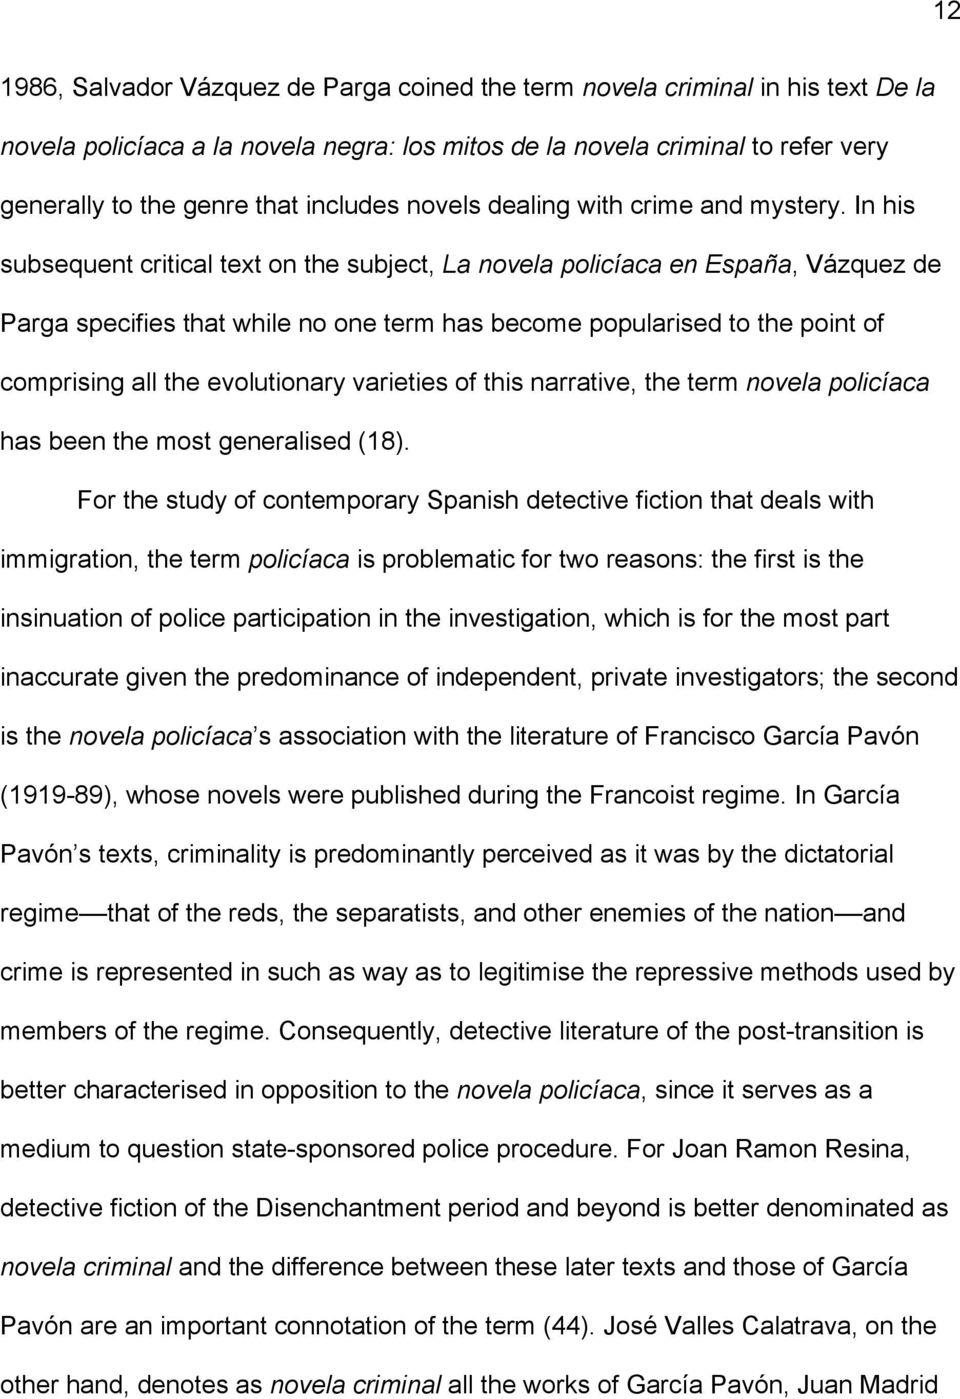 In his subsequent critical text on the subject, La novela policíaca en España, Vázquez de Parga specifies that while no one term has become popularised to the point of comprising all the evolutionary